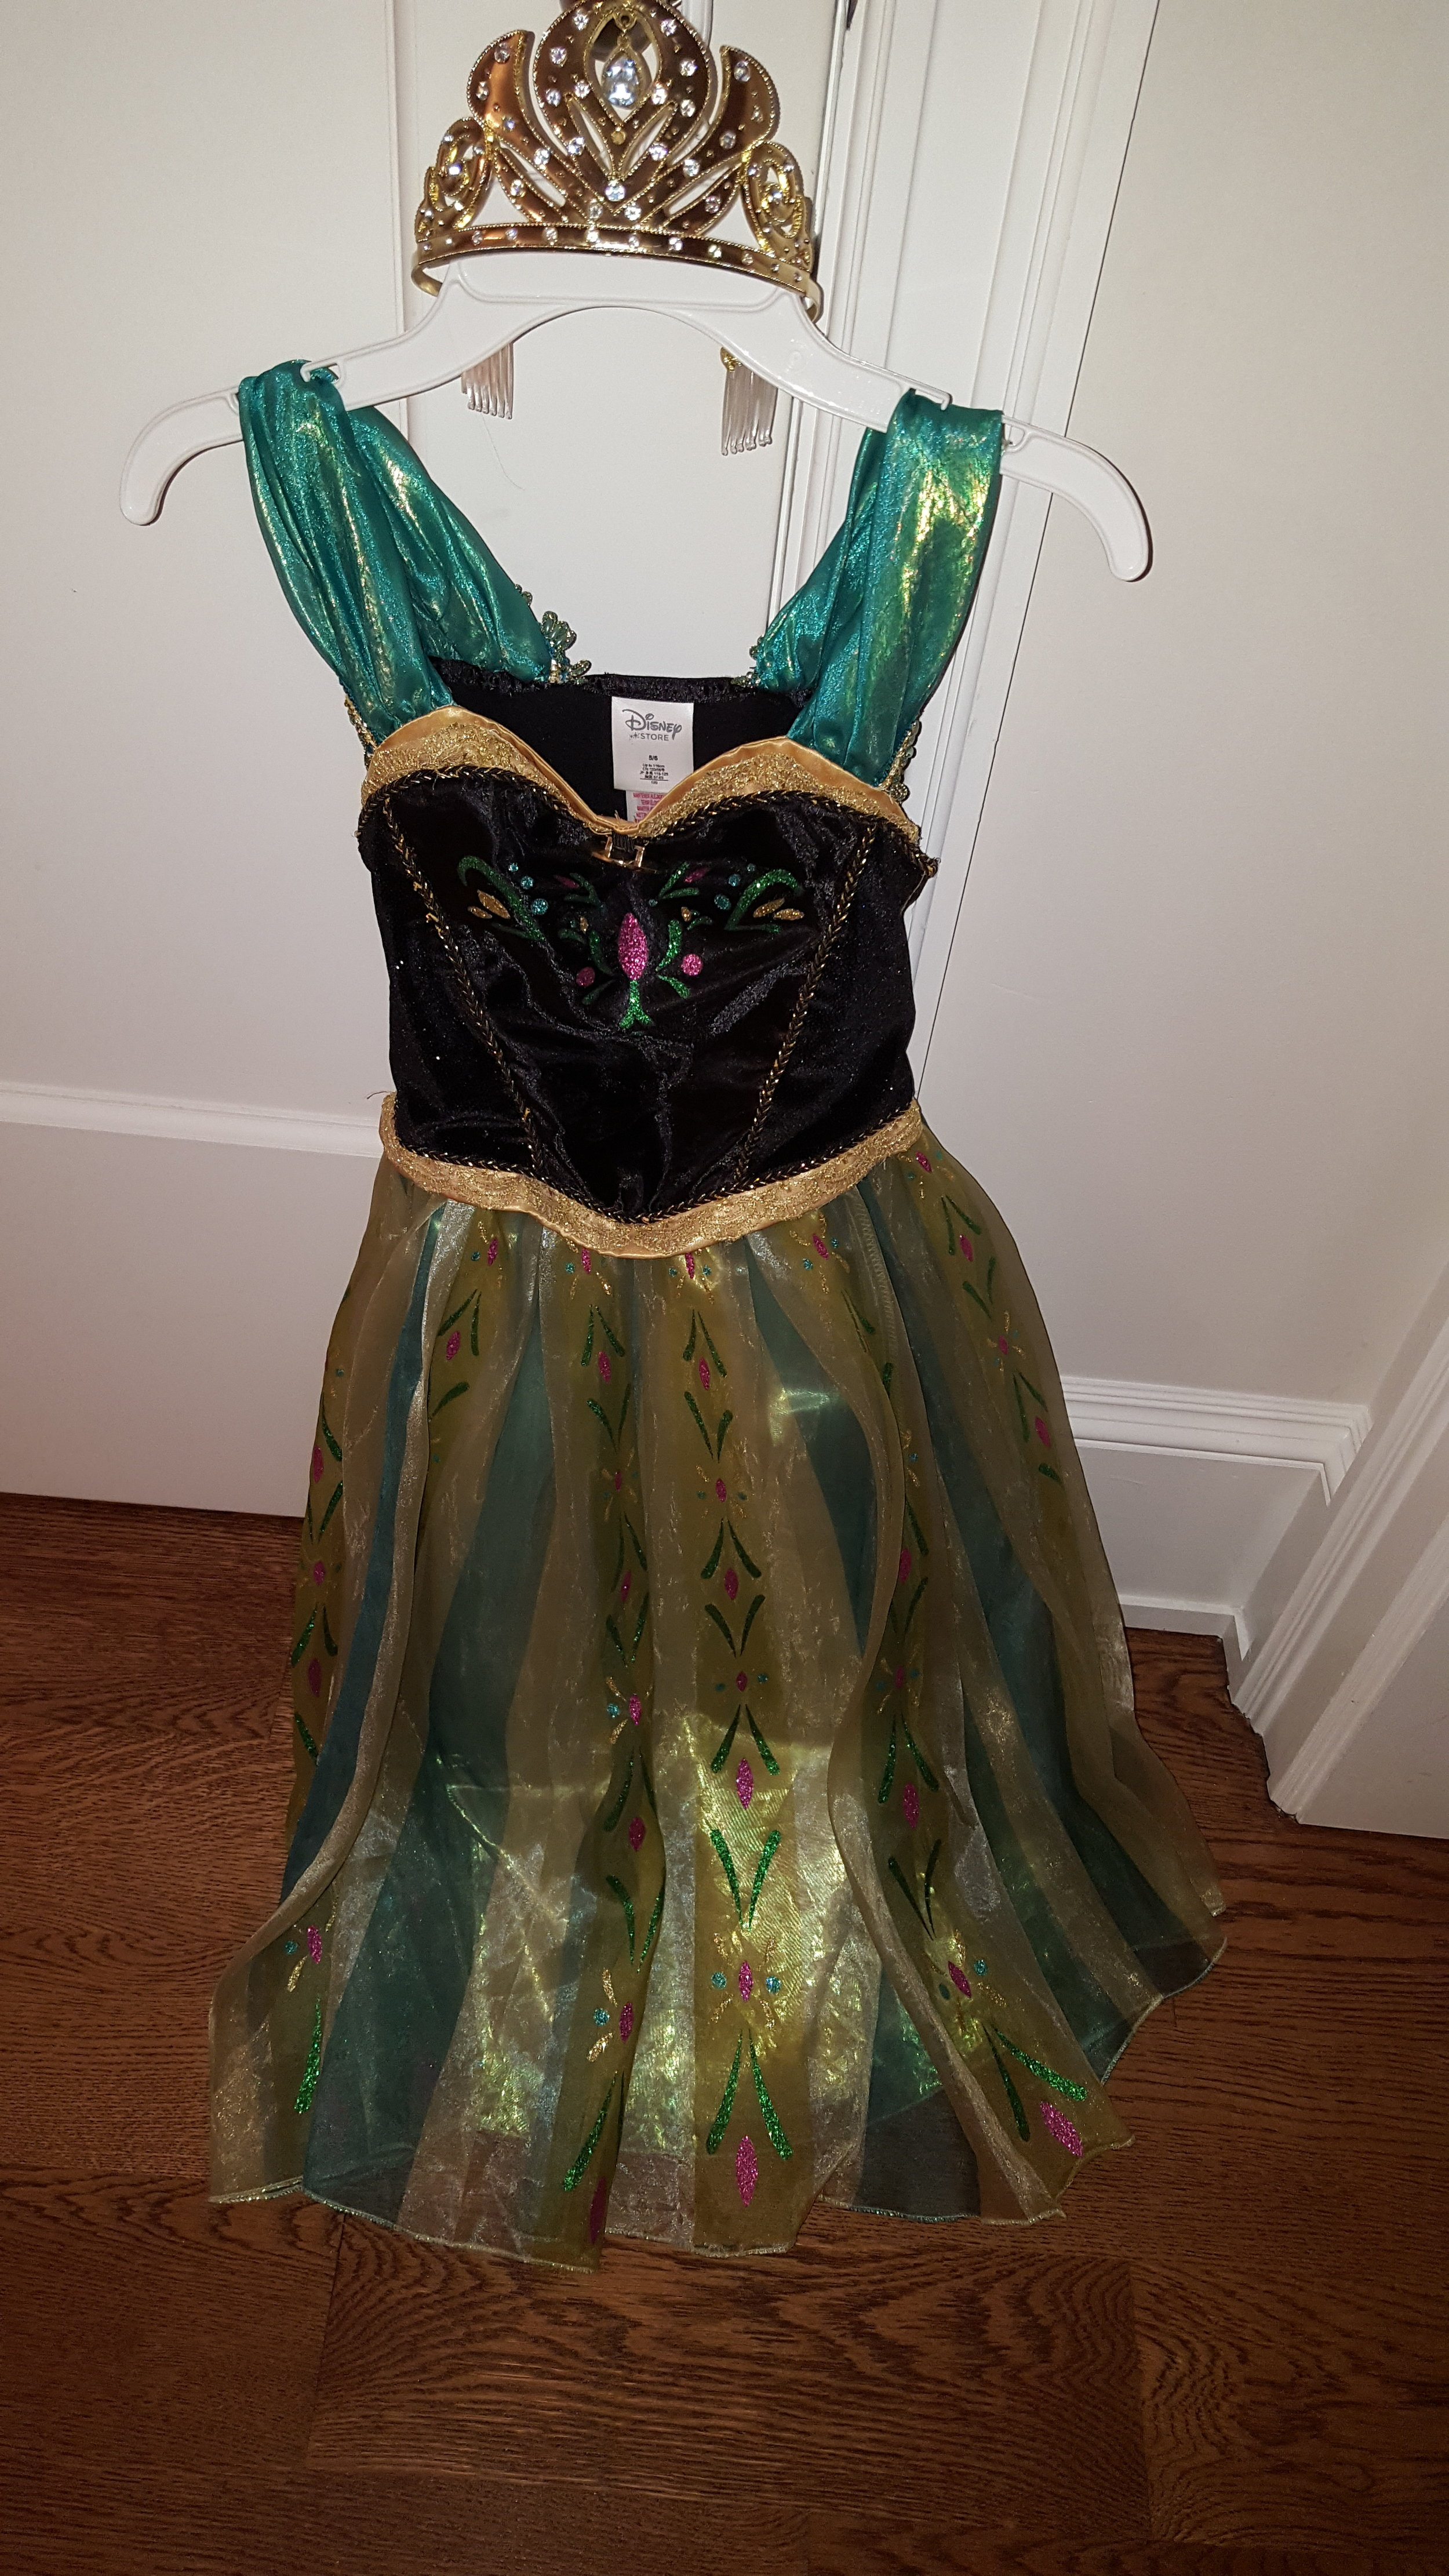 Disney Princess Costume 5-6 yo   $ 20